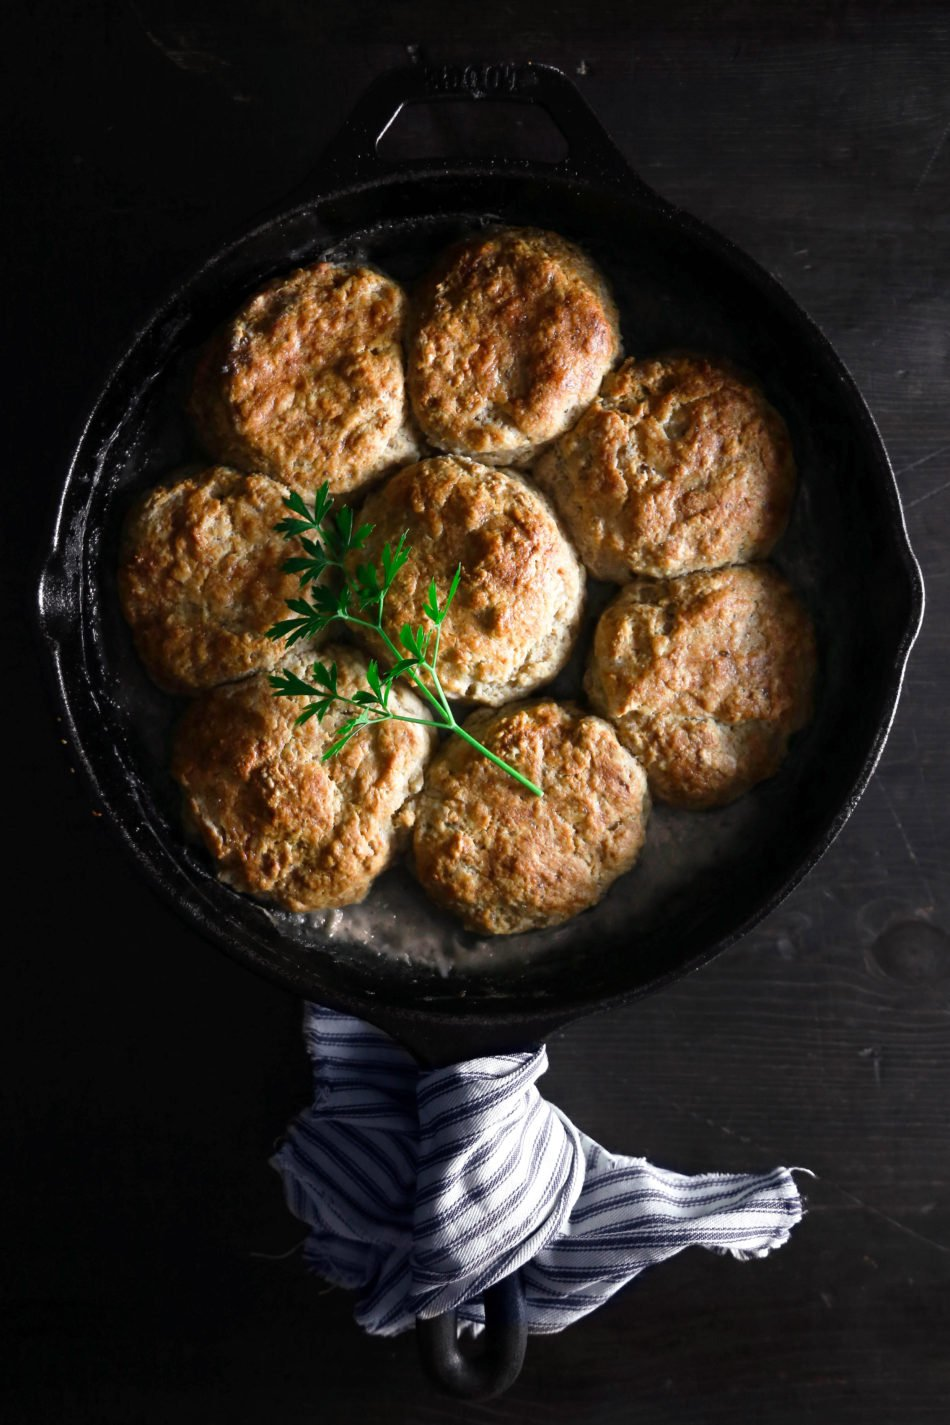 Biscuits and Gravy Breakfast Skillet | Vegan and vegetarian friendly. Gluten-free option included.